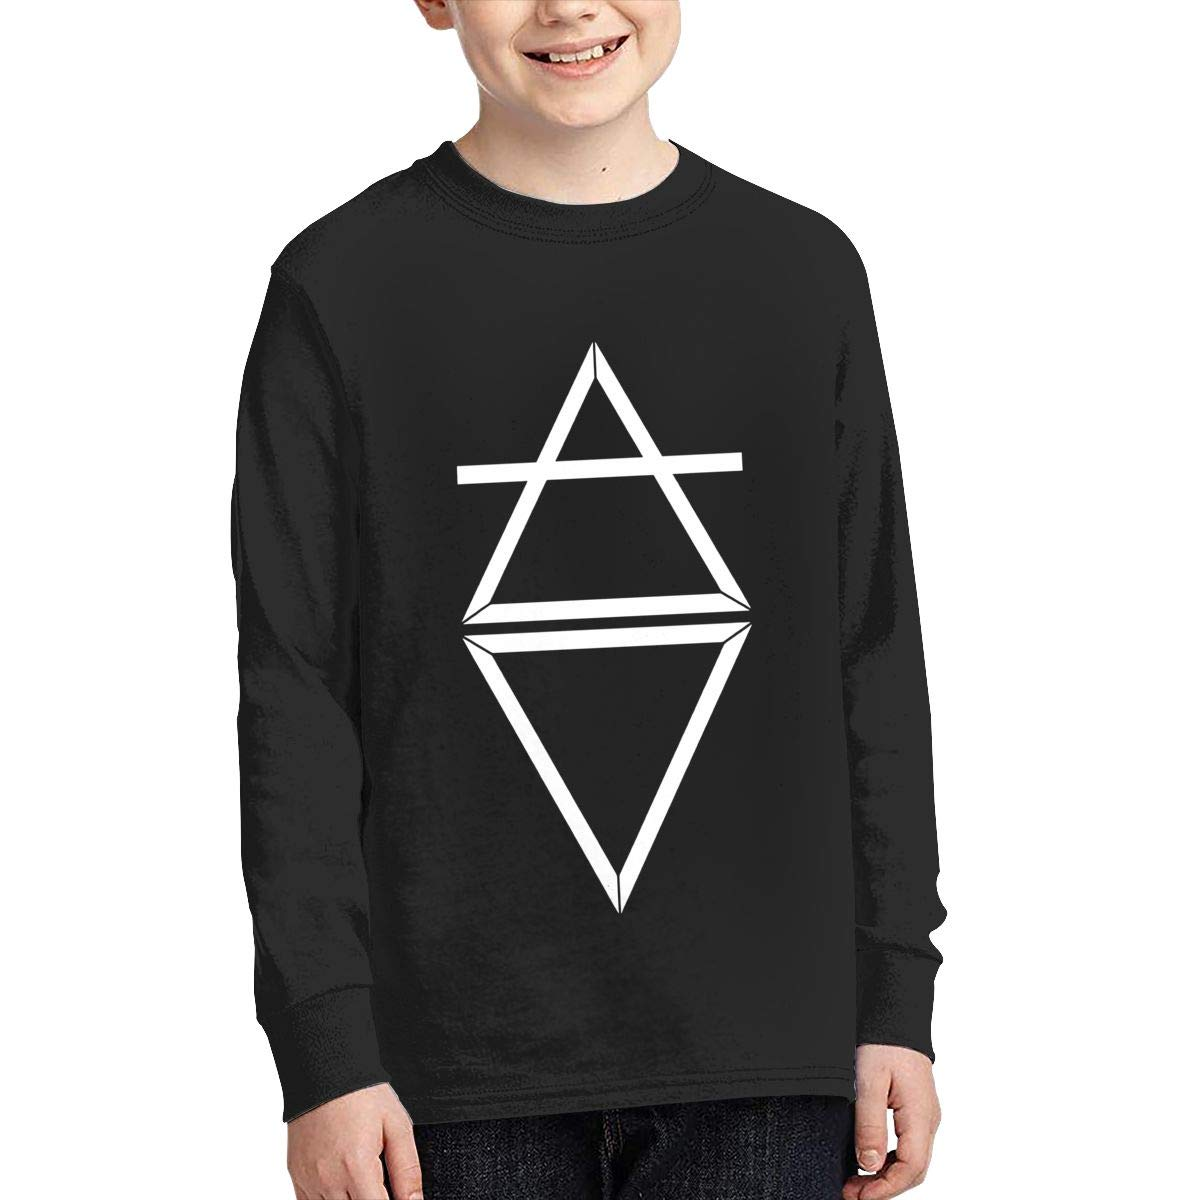 MichaelHazzard Florence and The Machine Logo Youth Casual Long Sleeve Crewneck Tee T-Shirt for Boys and Girls